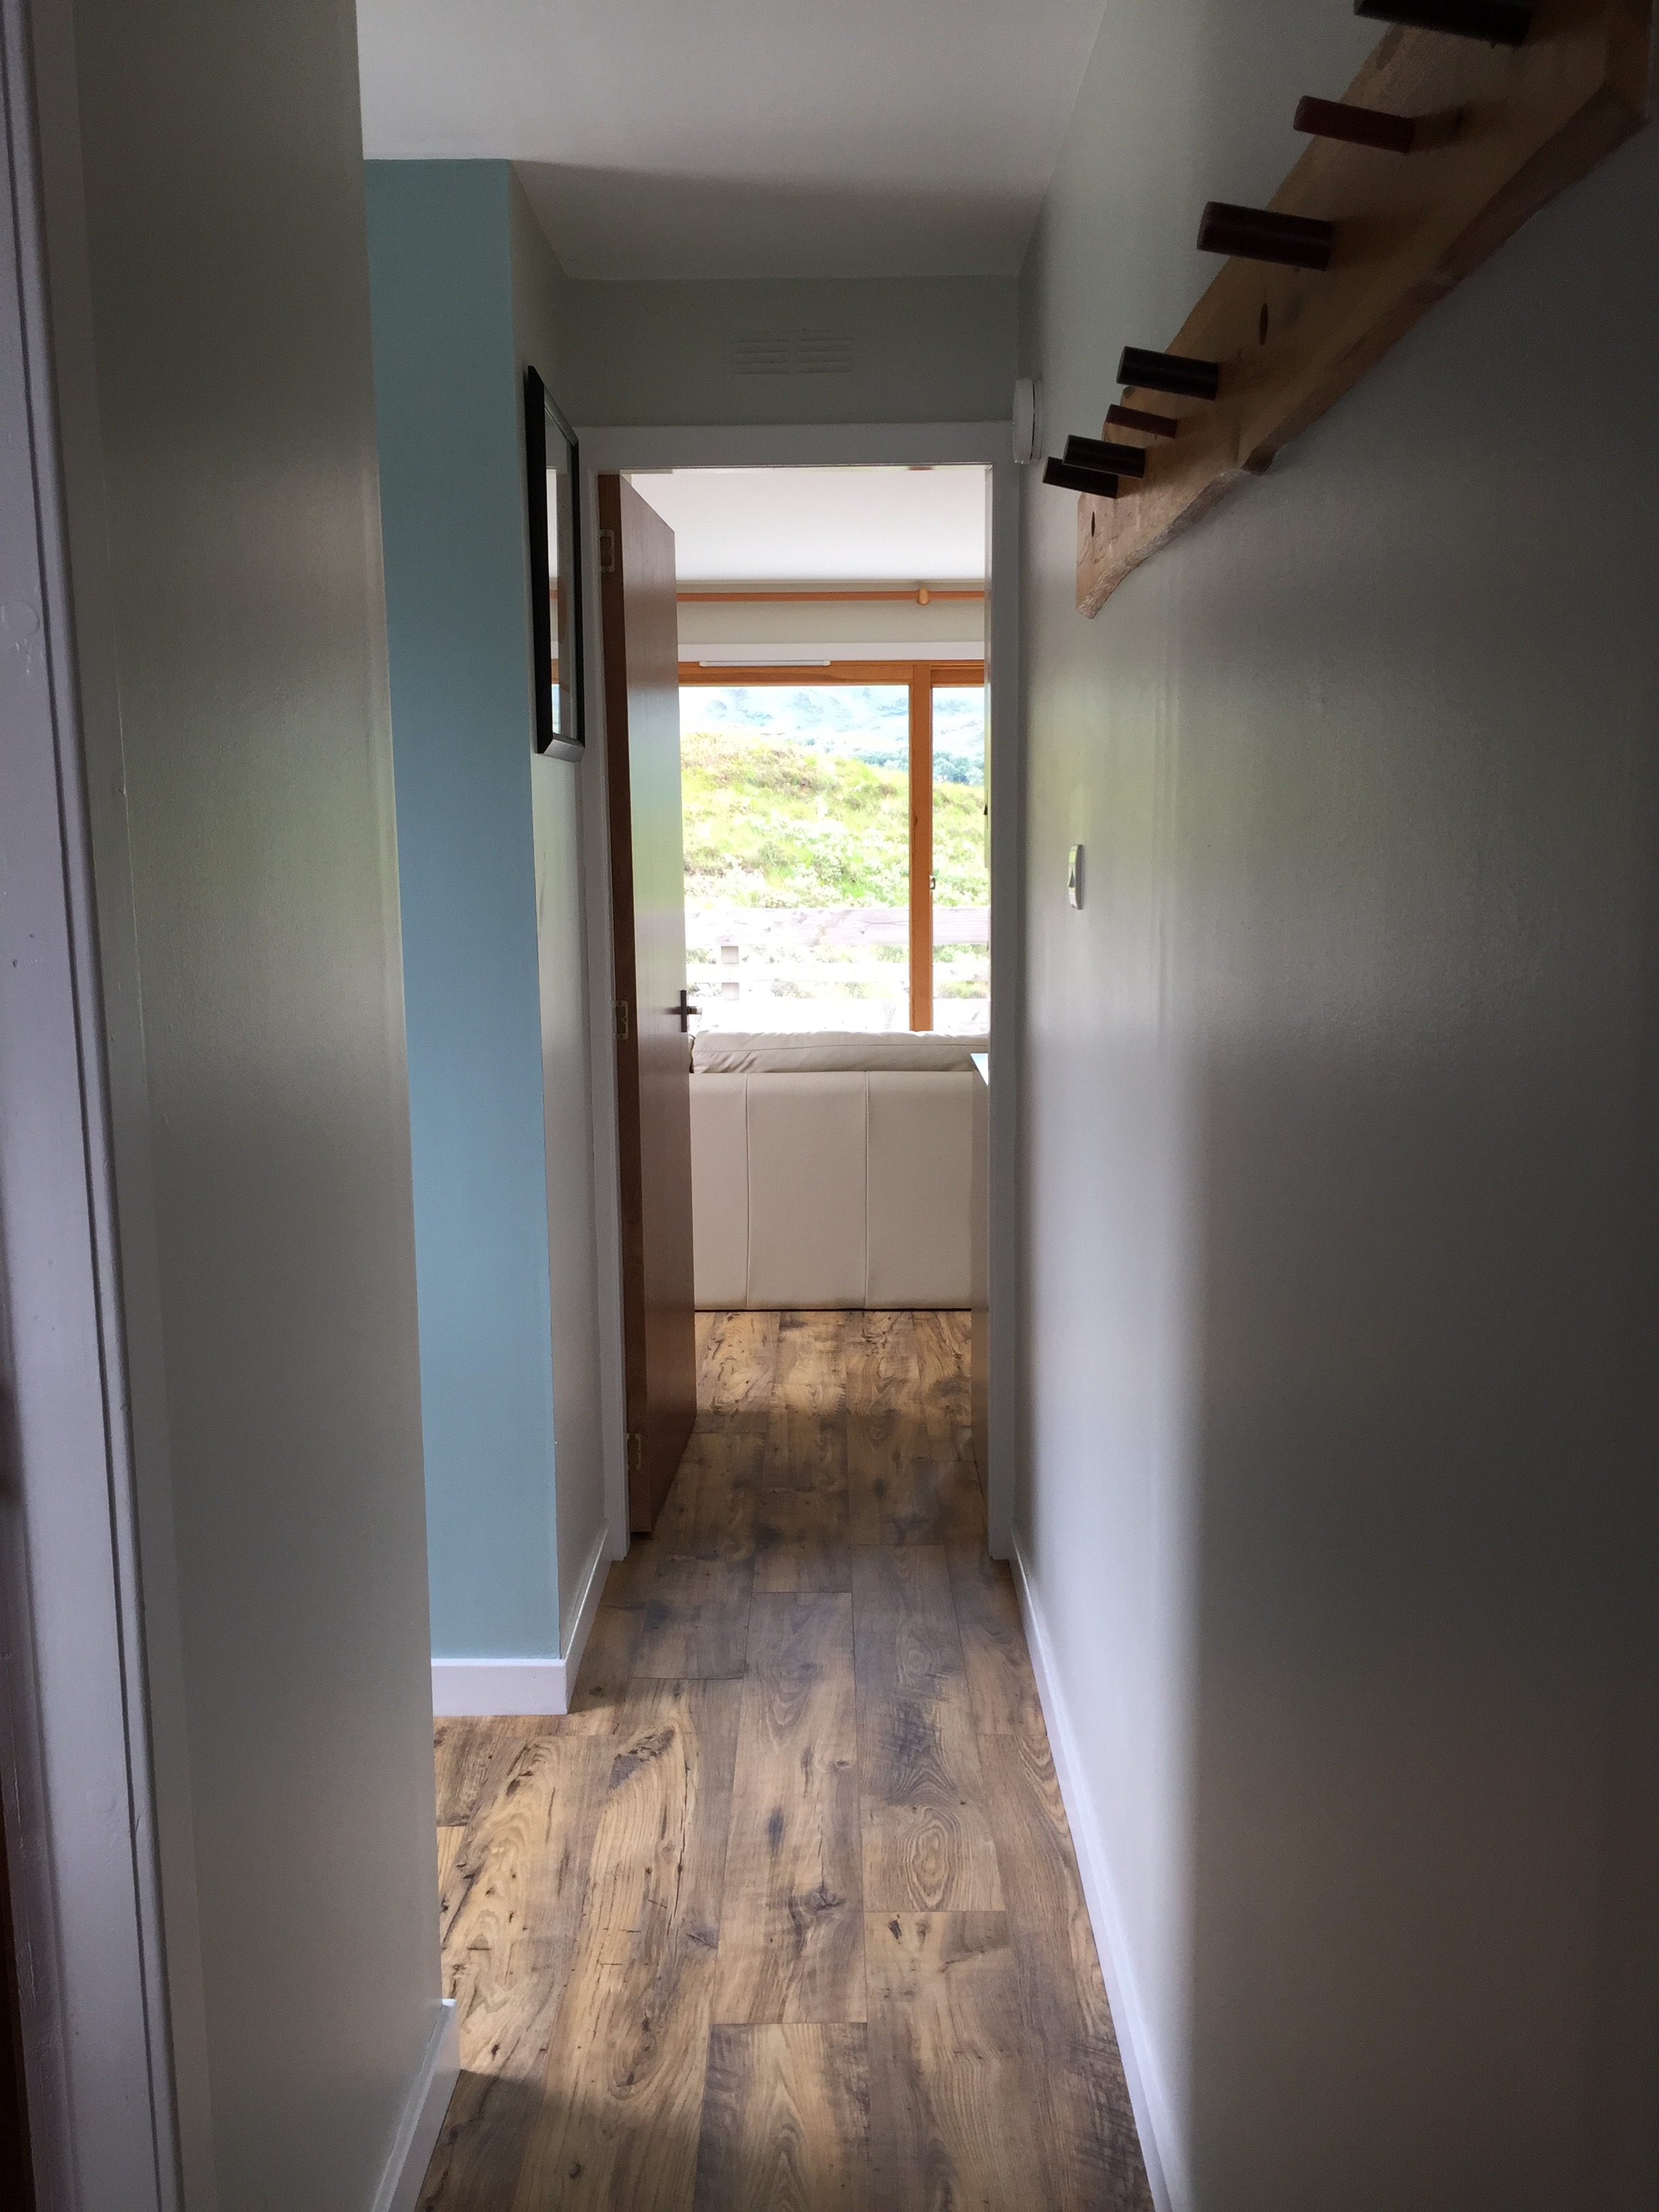 hall leading through to the open plan living space